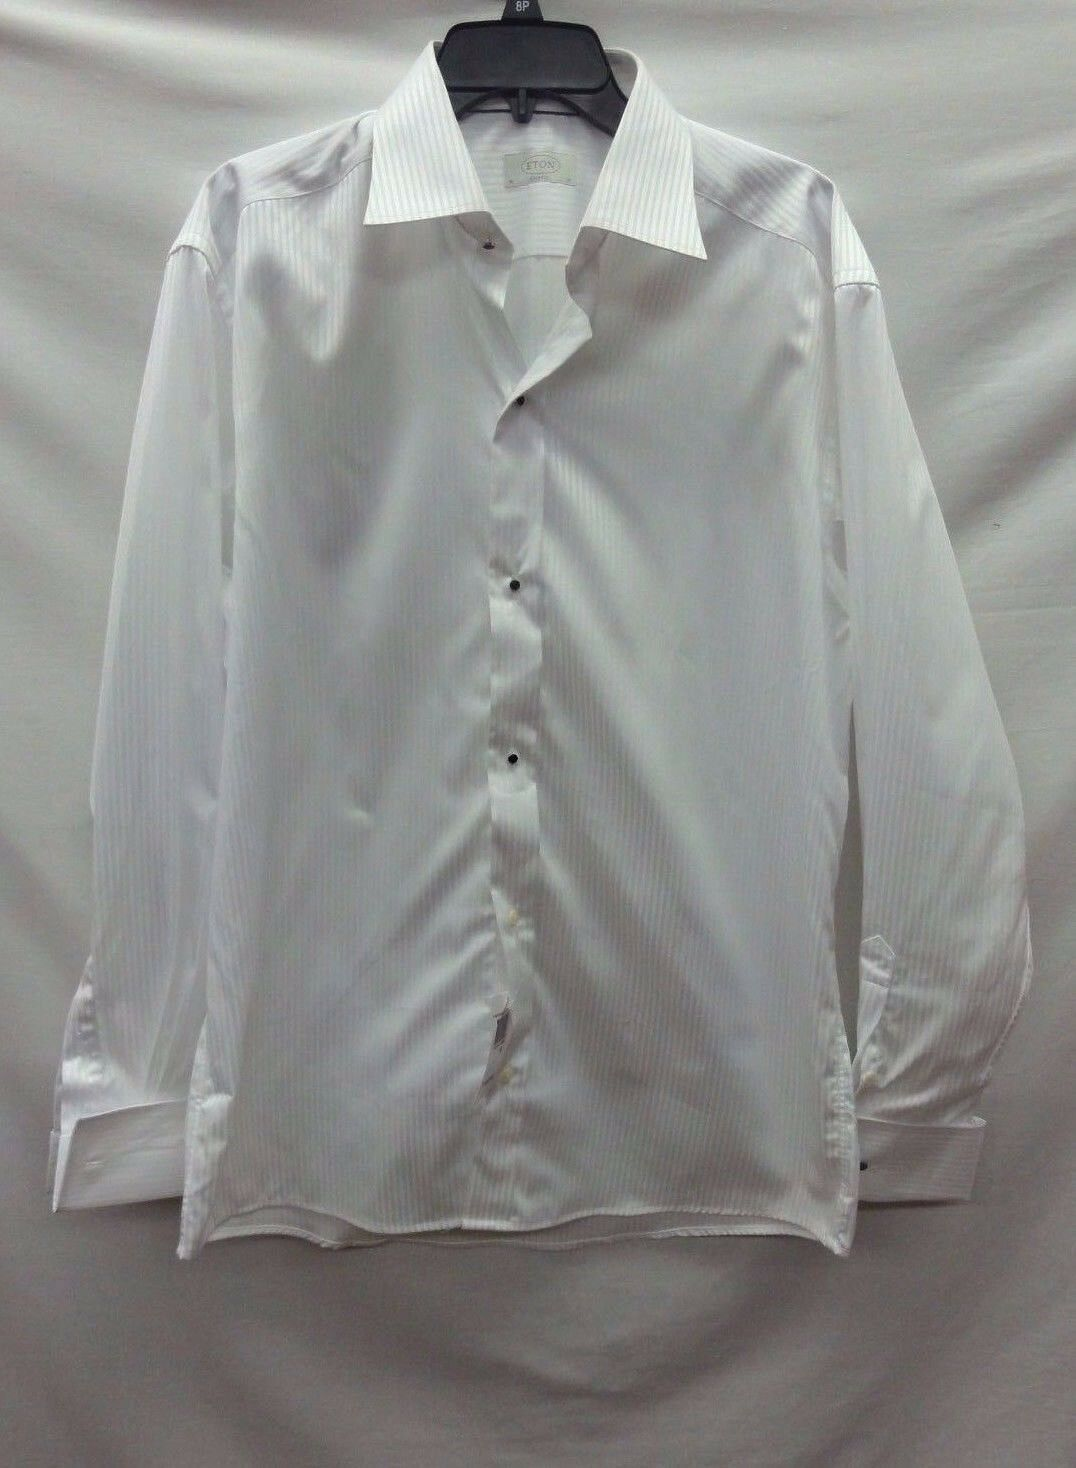 Eton Classic Fit Men's Striped White Shirt, Size 16